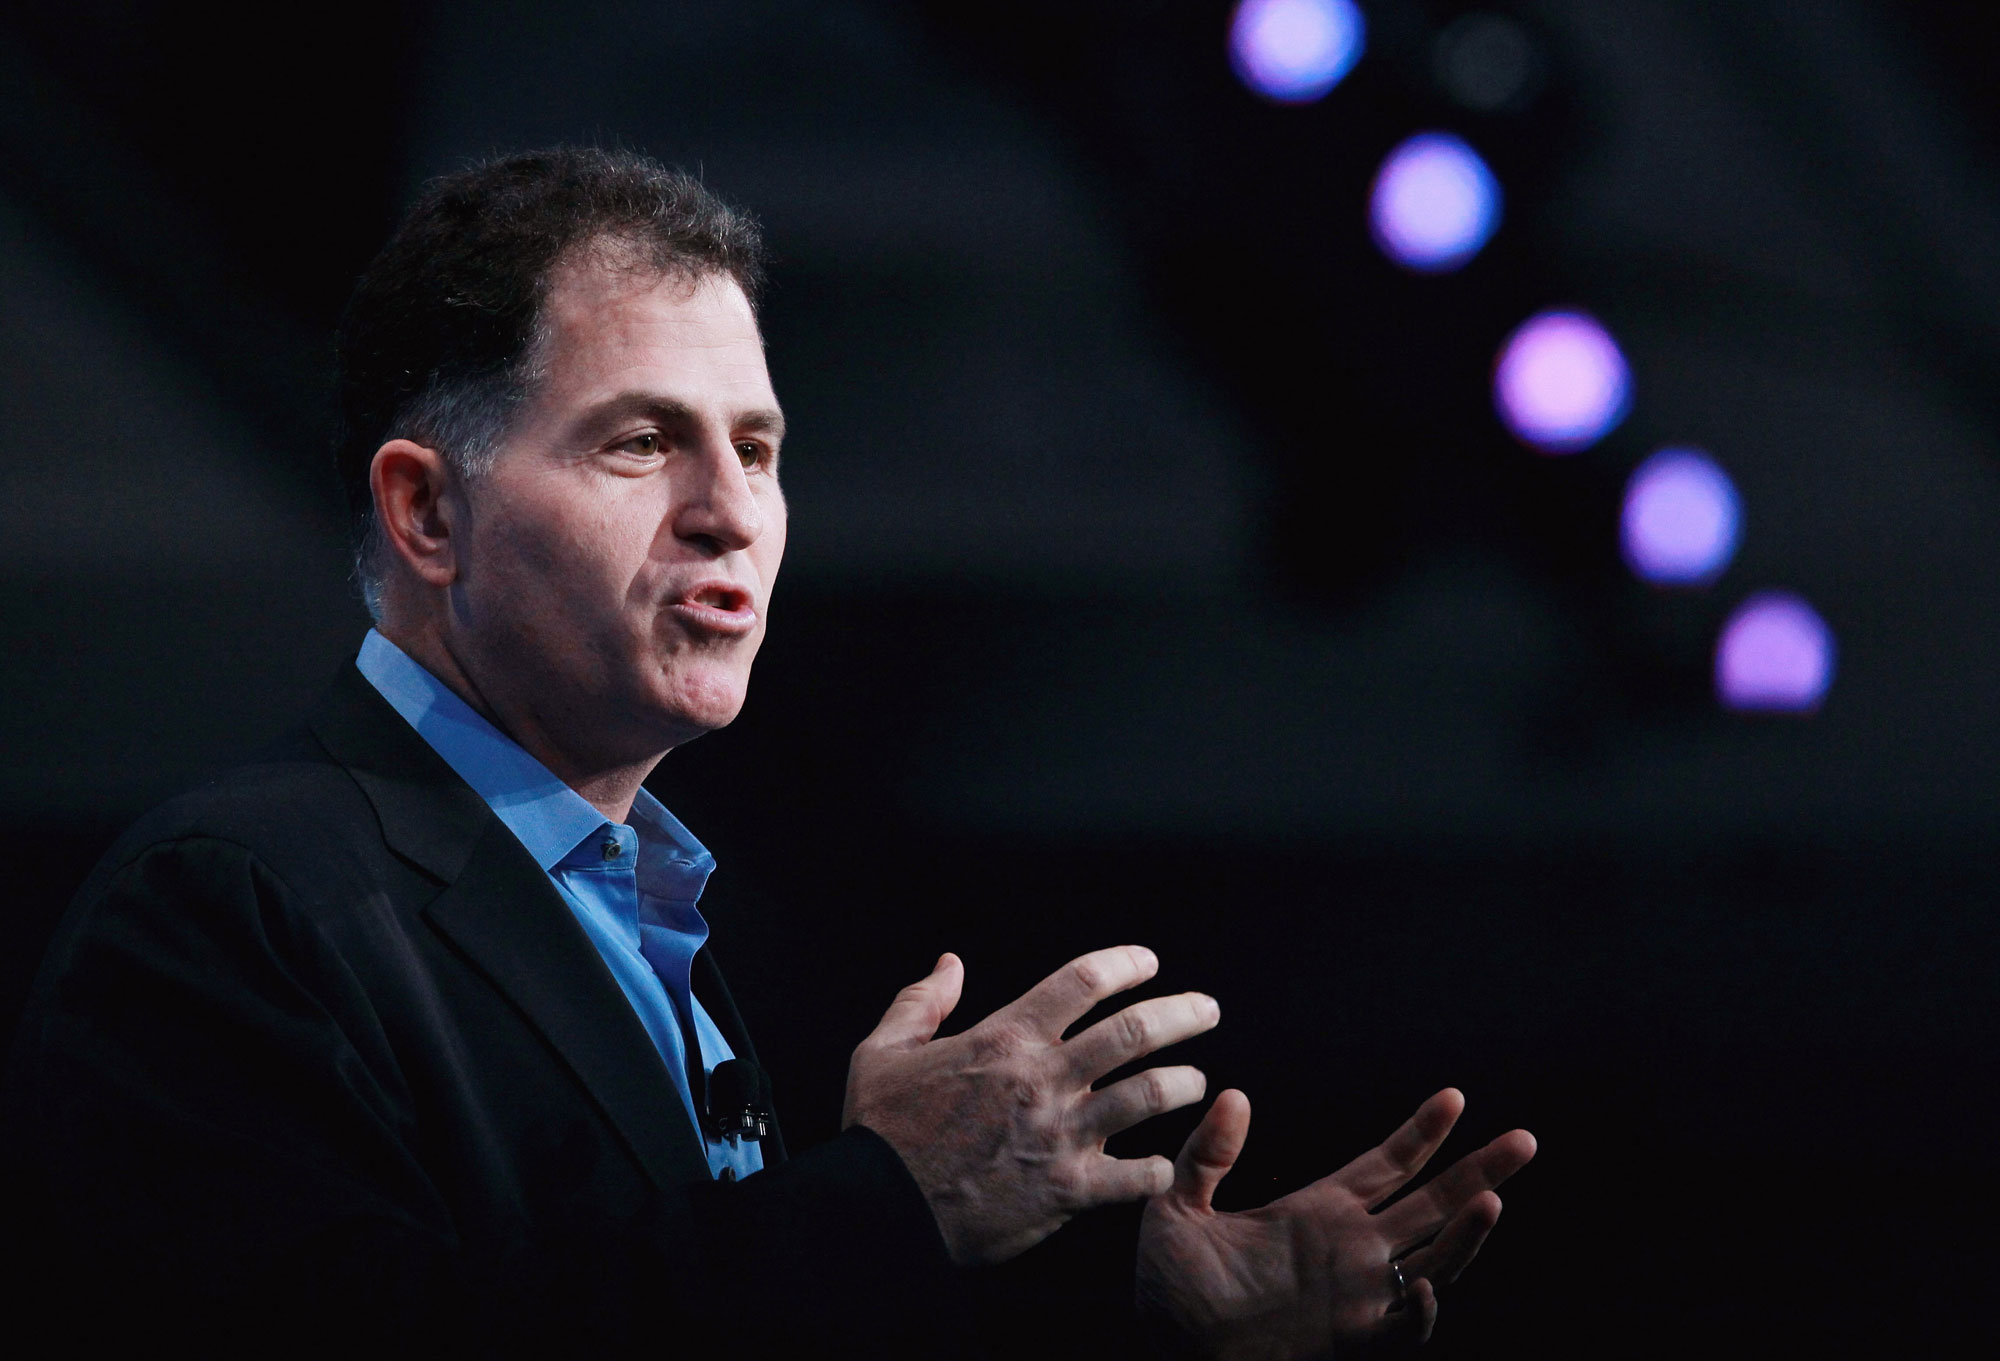 Michael Dell Addresses Oracle's OpenWorld 2010 Conference